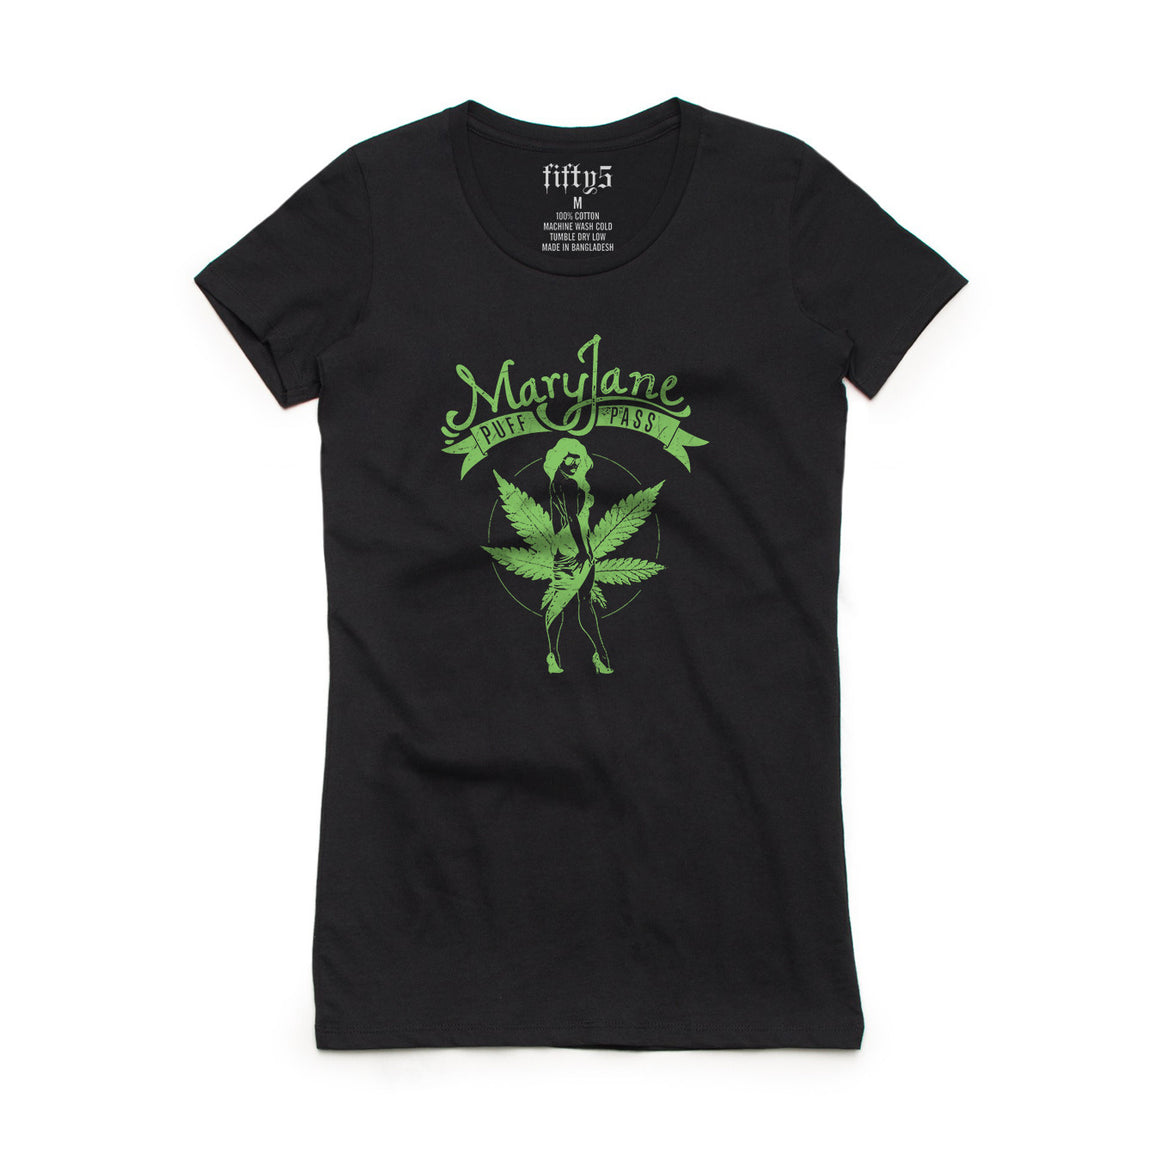 Fifty5 Clothing Mary Jane Puff Pass Women's Crew Neck T-Shirt